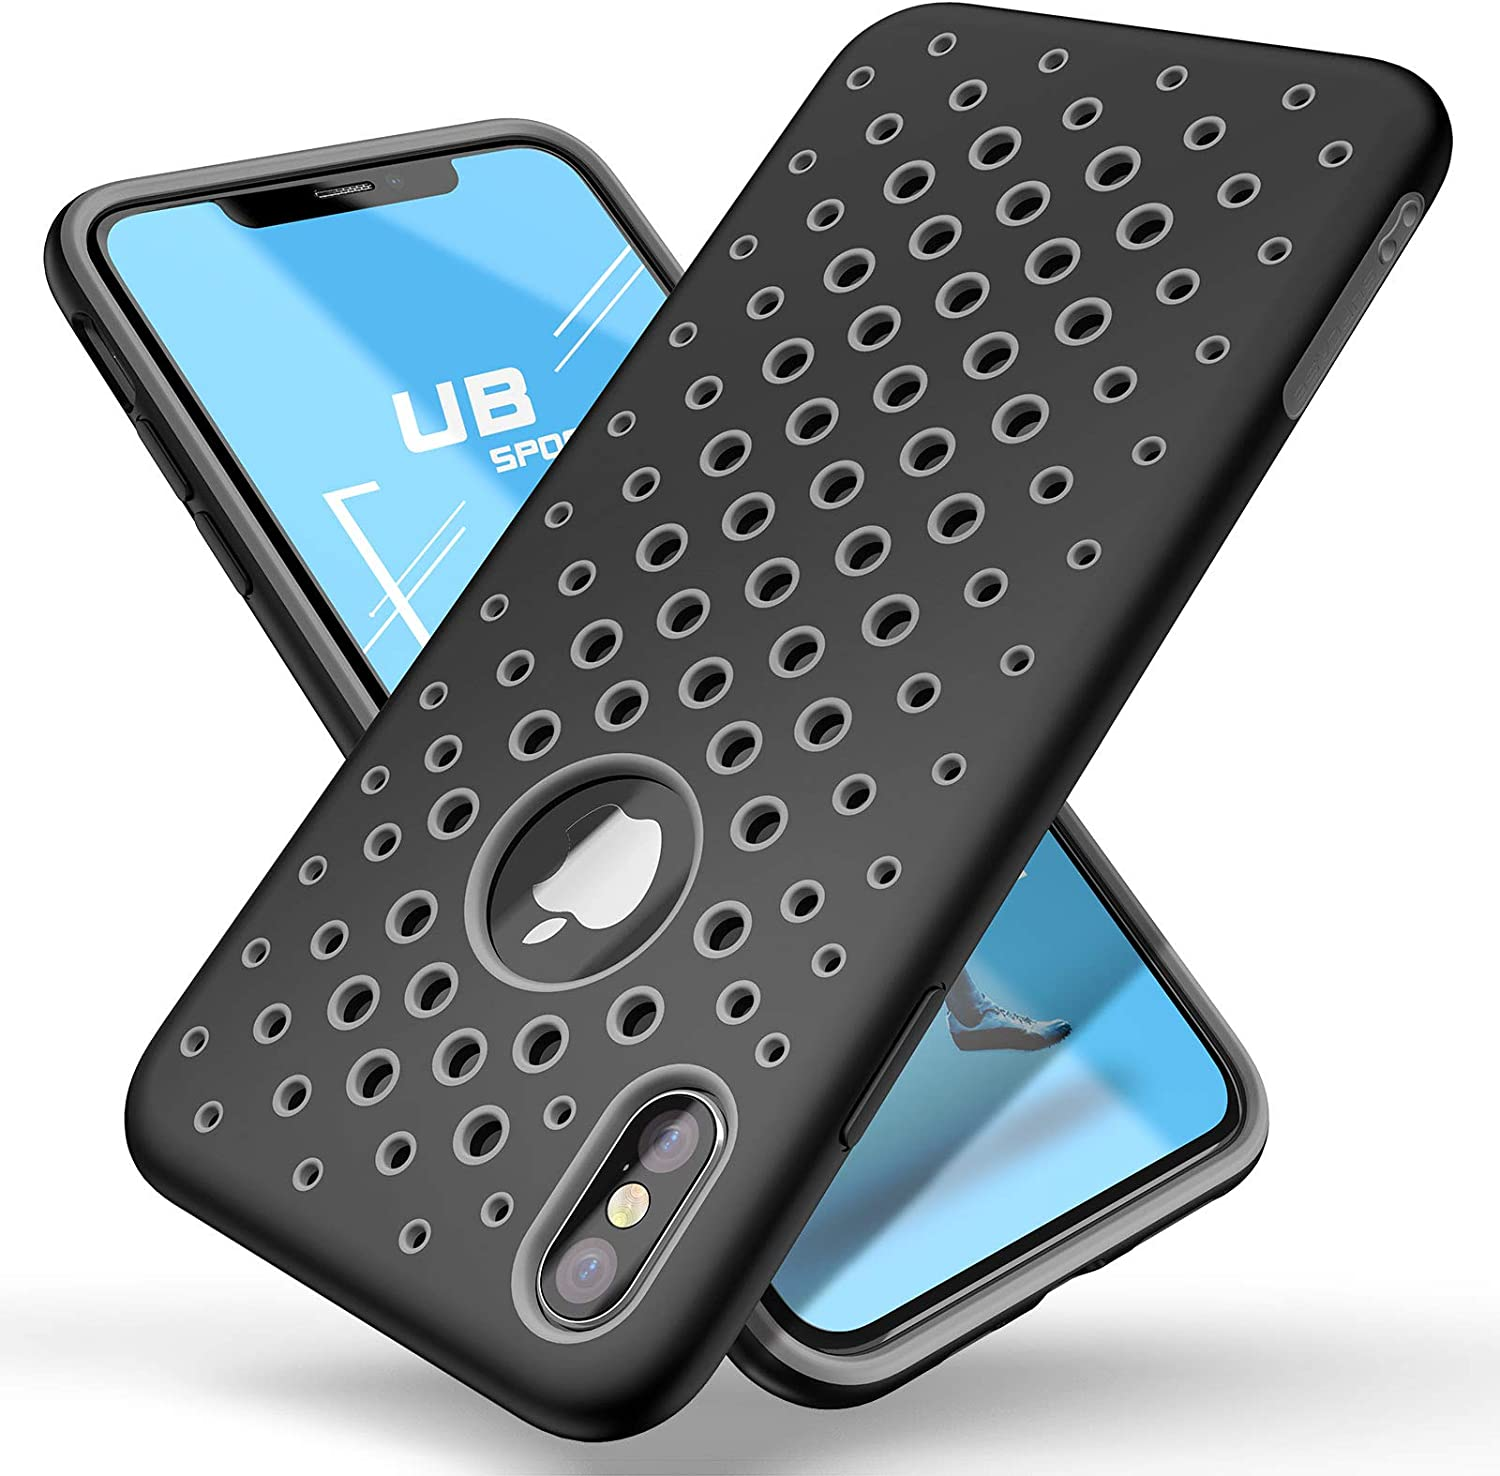 SUPCASE Unicorn Beetle Sport Series Case for iPhone Xs Case 2018 Release Liquid Silicone Rubber TPU Premium Hybrid Case [Hole Pattern] with Heat Dissipation (Black)